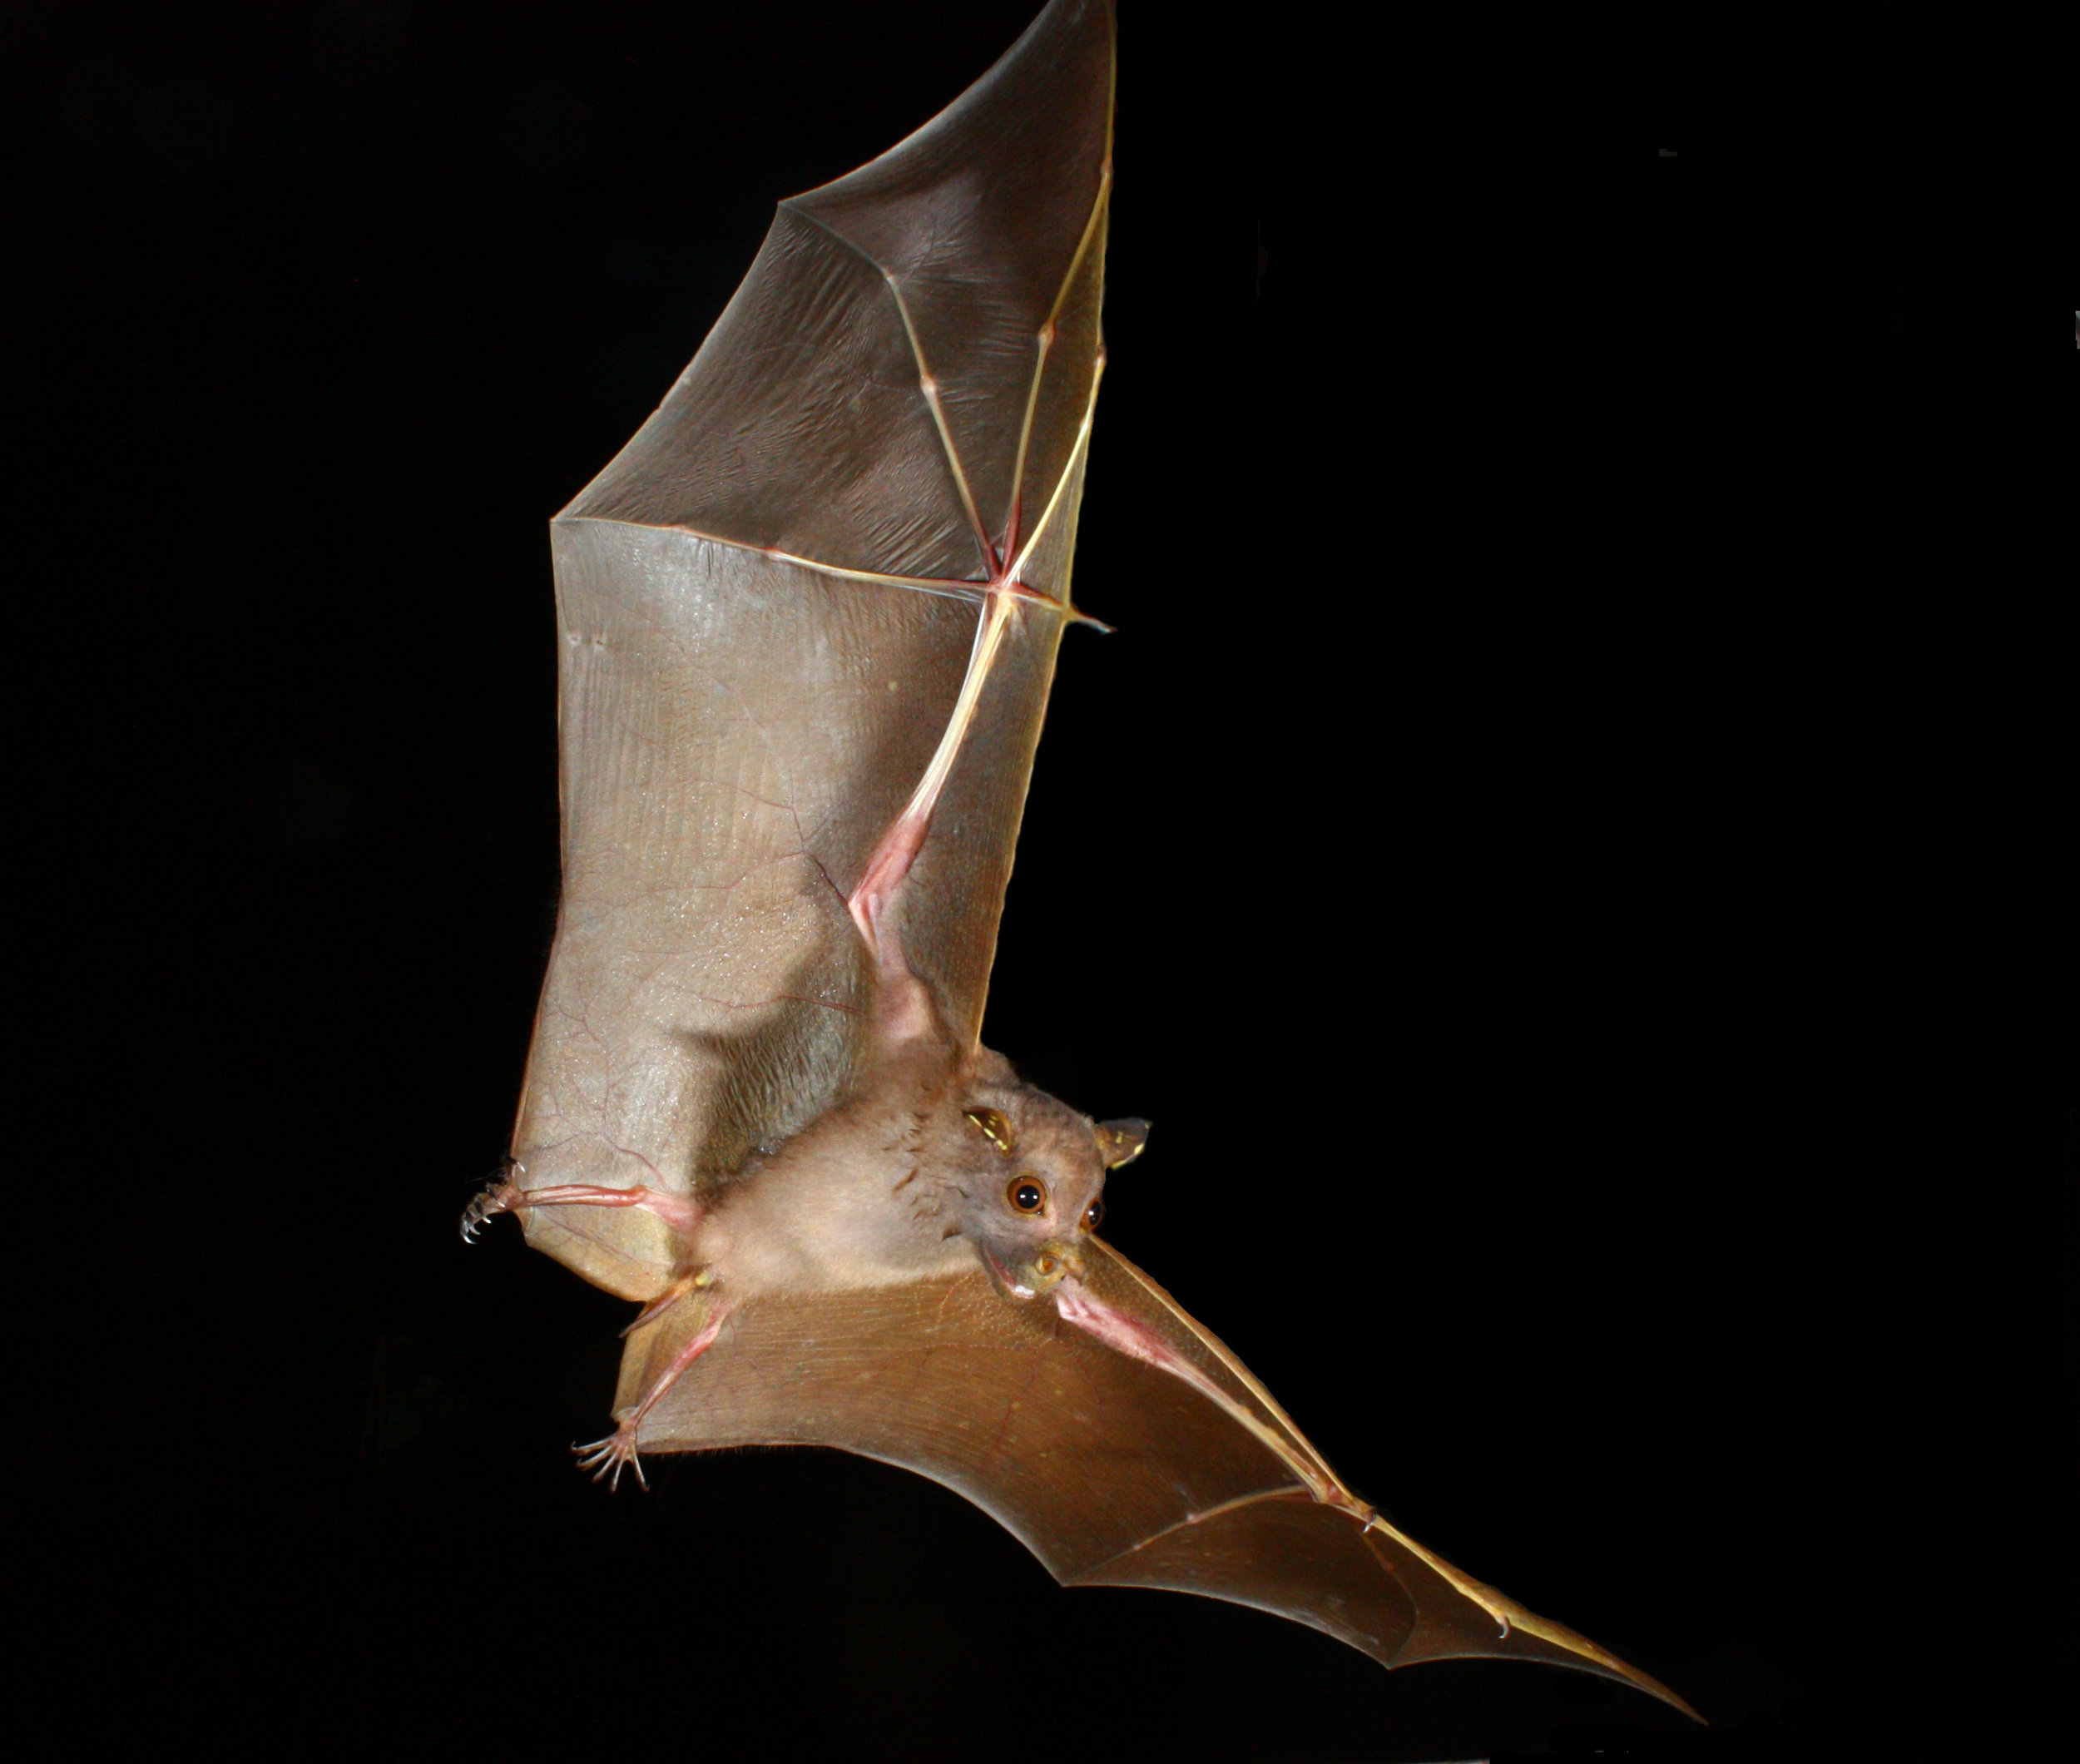 Eastern Tube-nosed Bat - Photo: Micheal Pennay